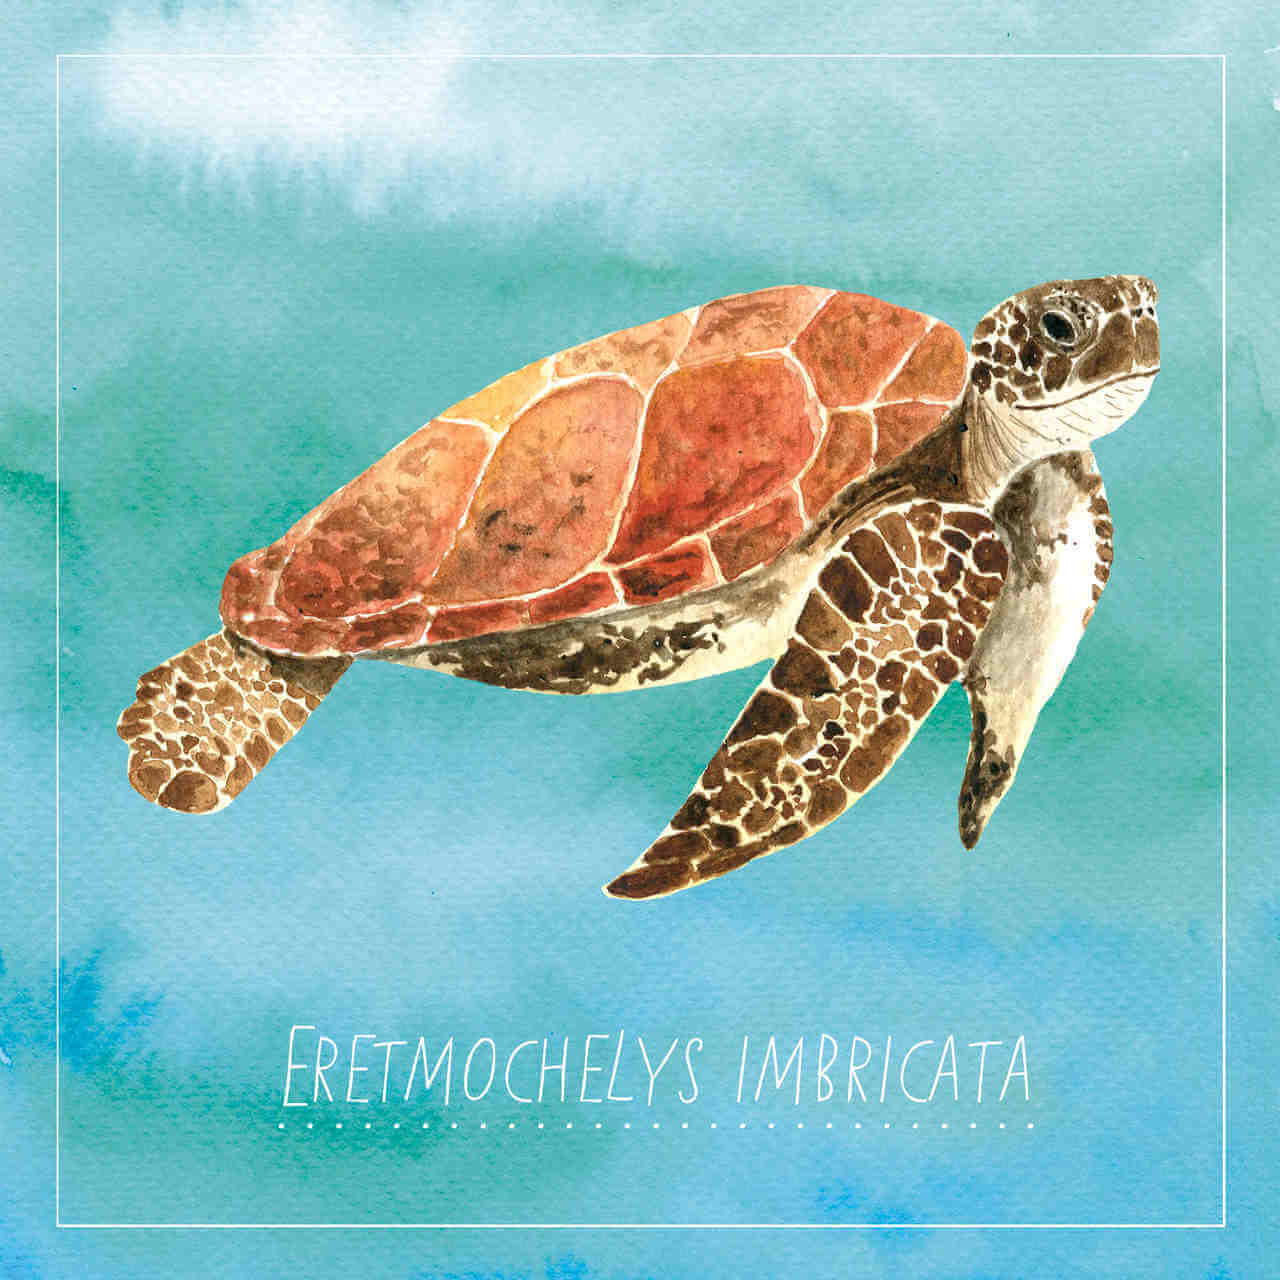 An illustration of a caribbean turtle